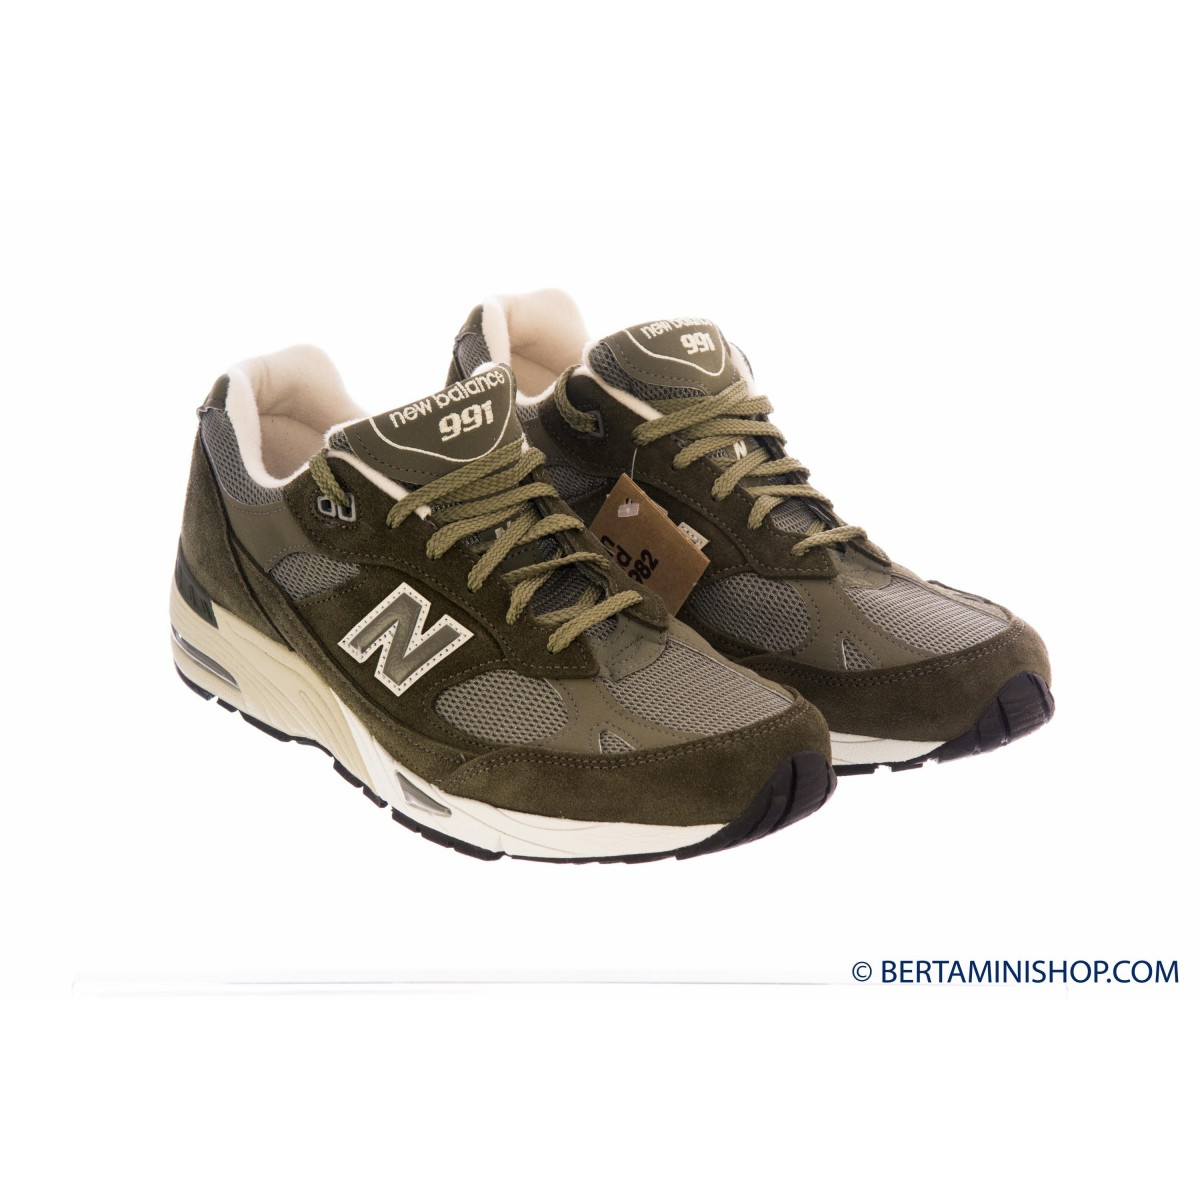 Shoes New Balance Man - M991 Made In Uk Originals